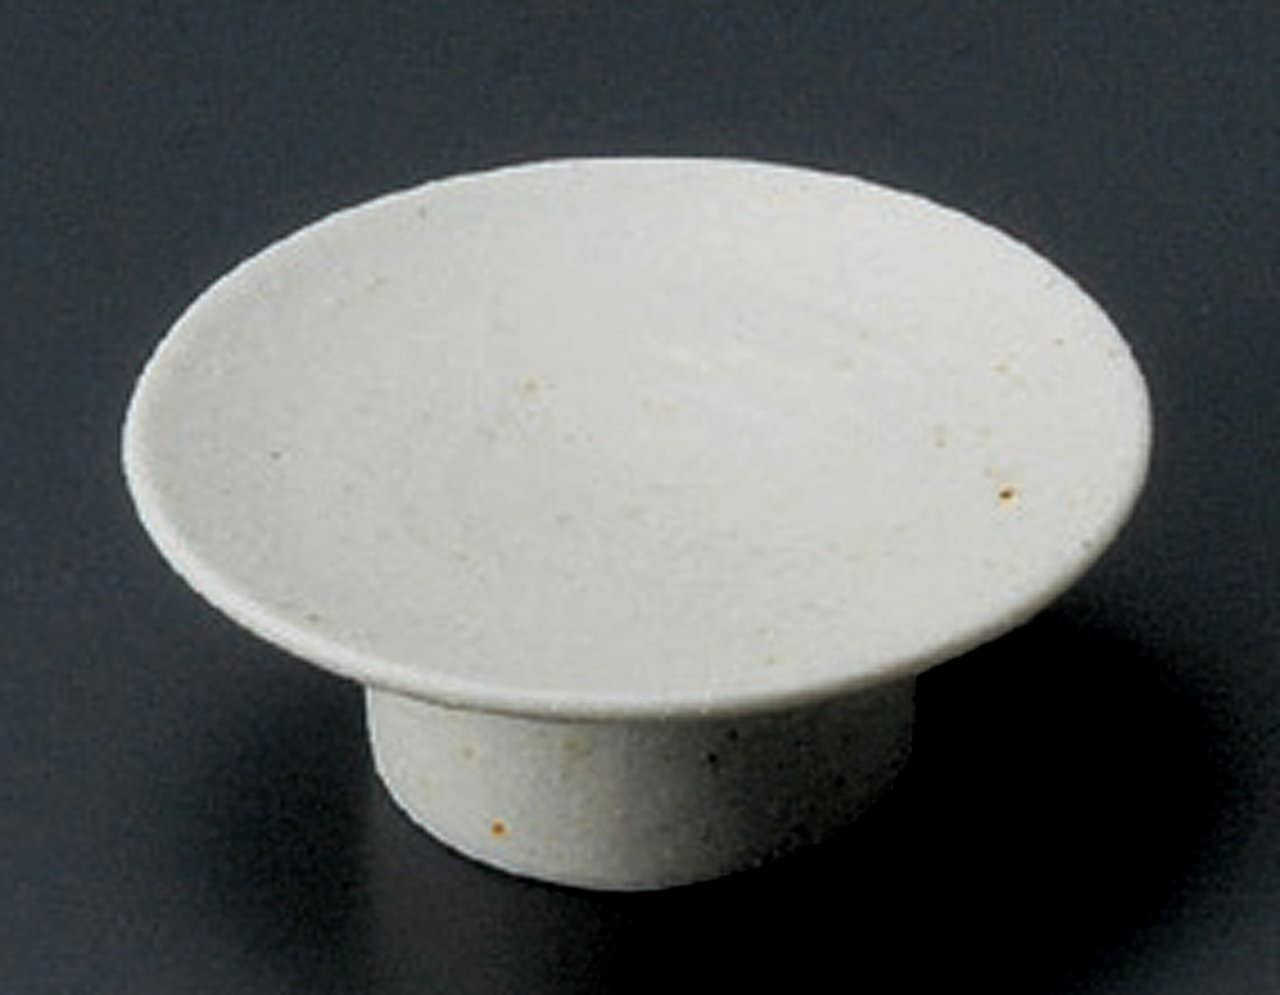 KOBIKI-KOUDAI Jiki Japanese Porcelain Set of 2 Small Plates